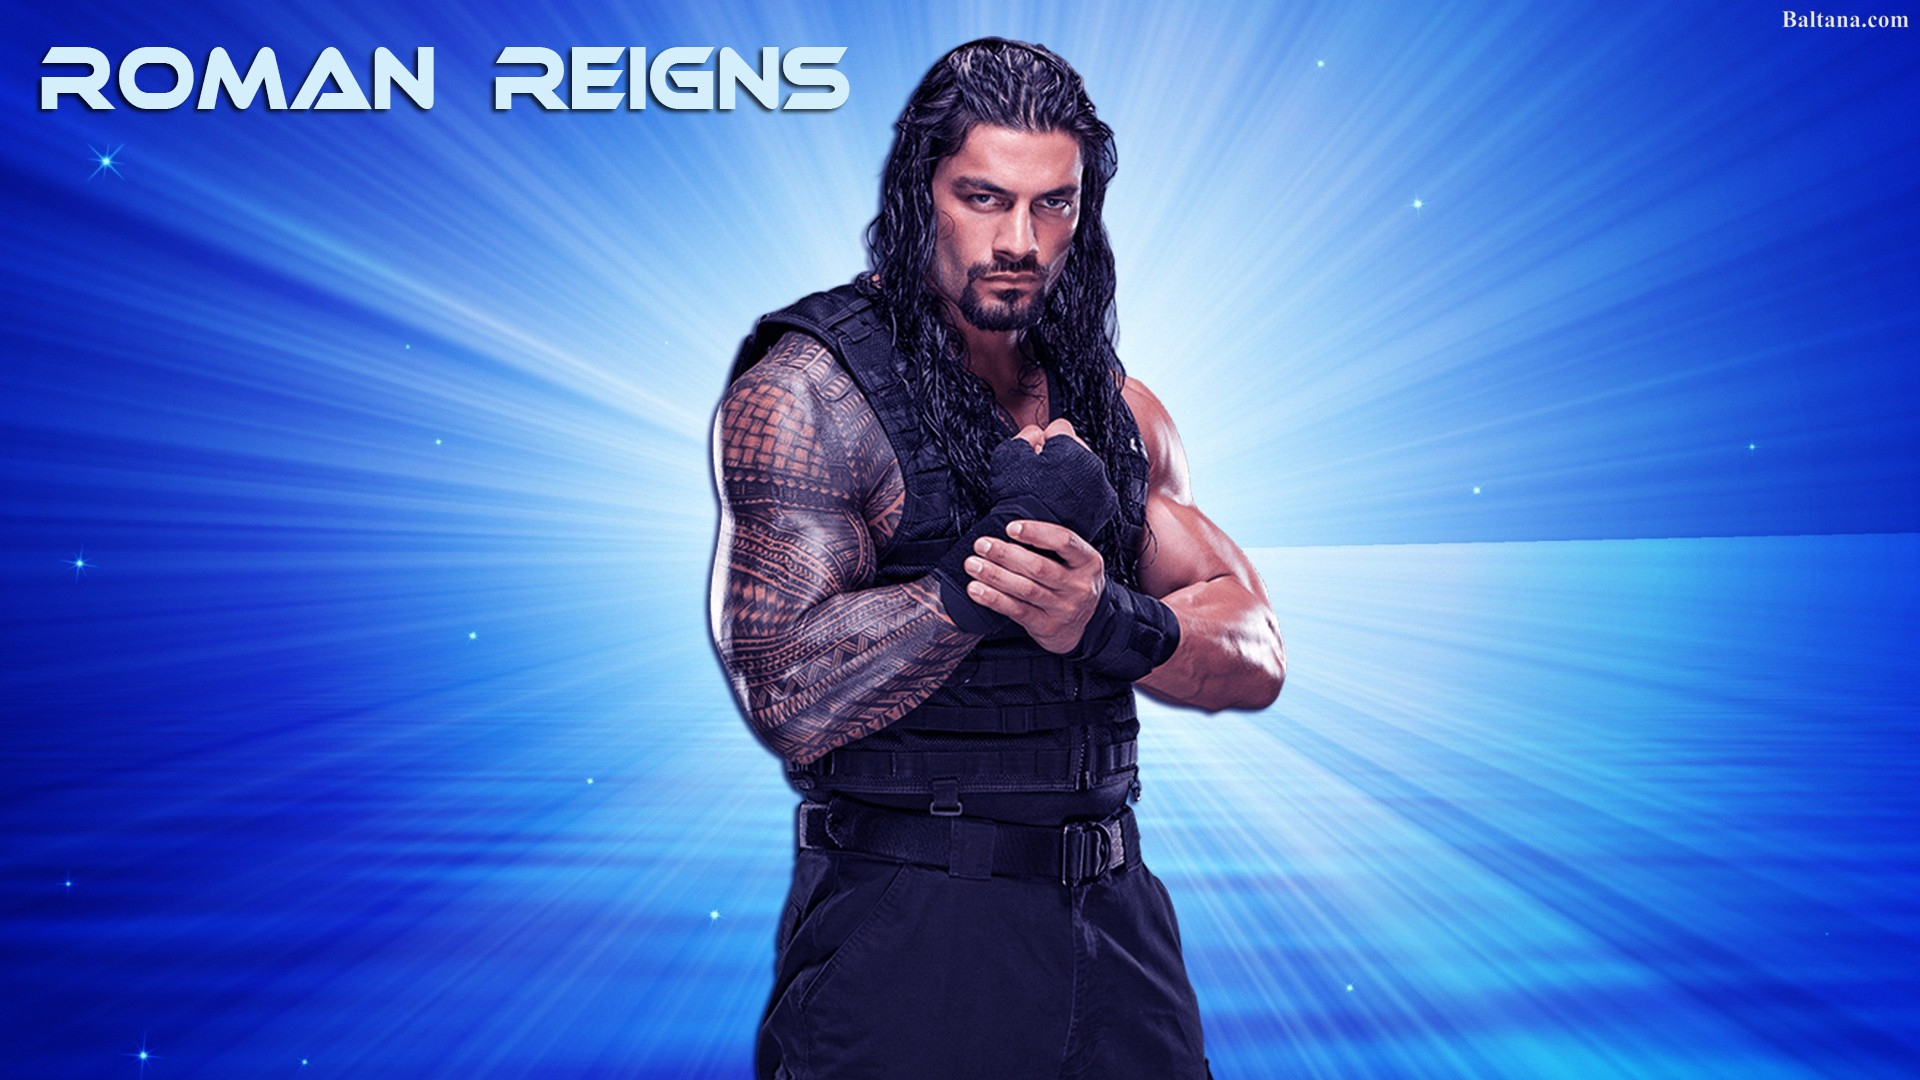 roman reigns wallpapers hd backgrounds, images, pics, photos free